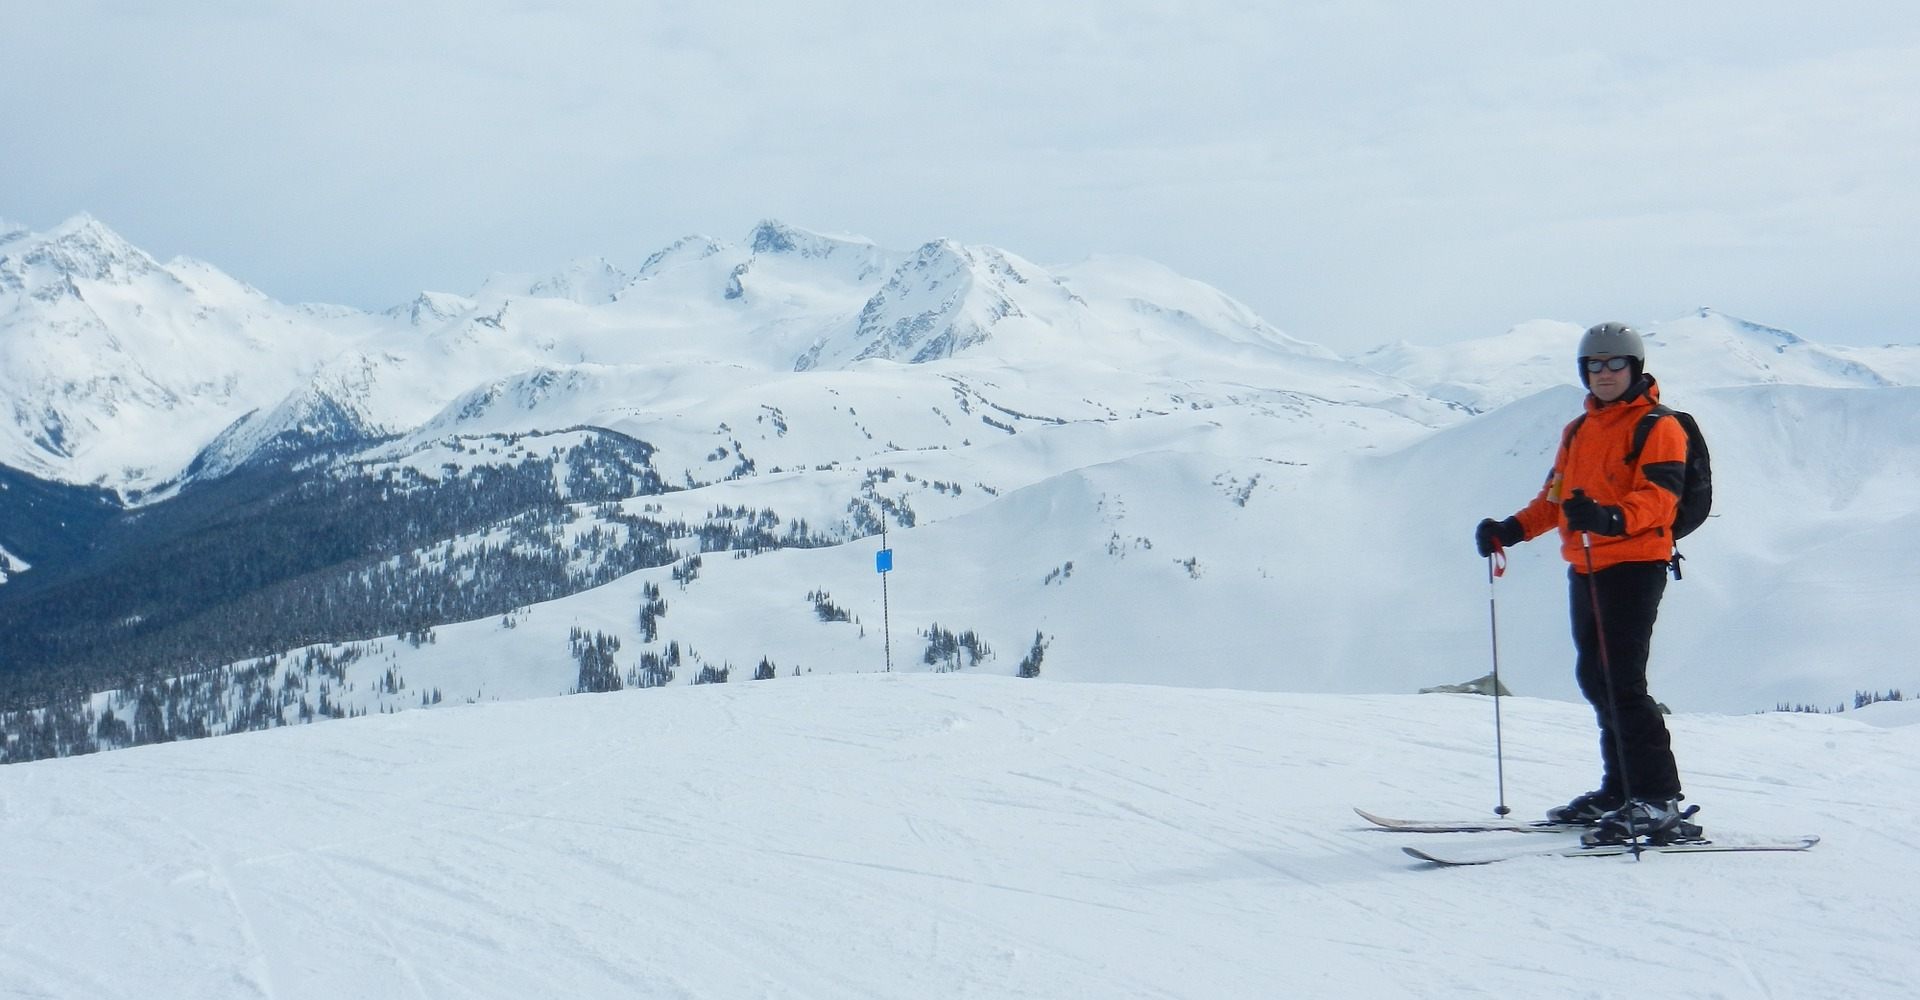 Skiing in the Pacific Northwest